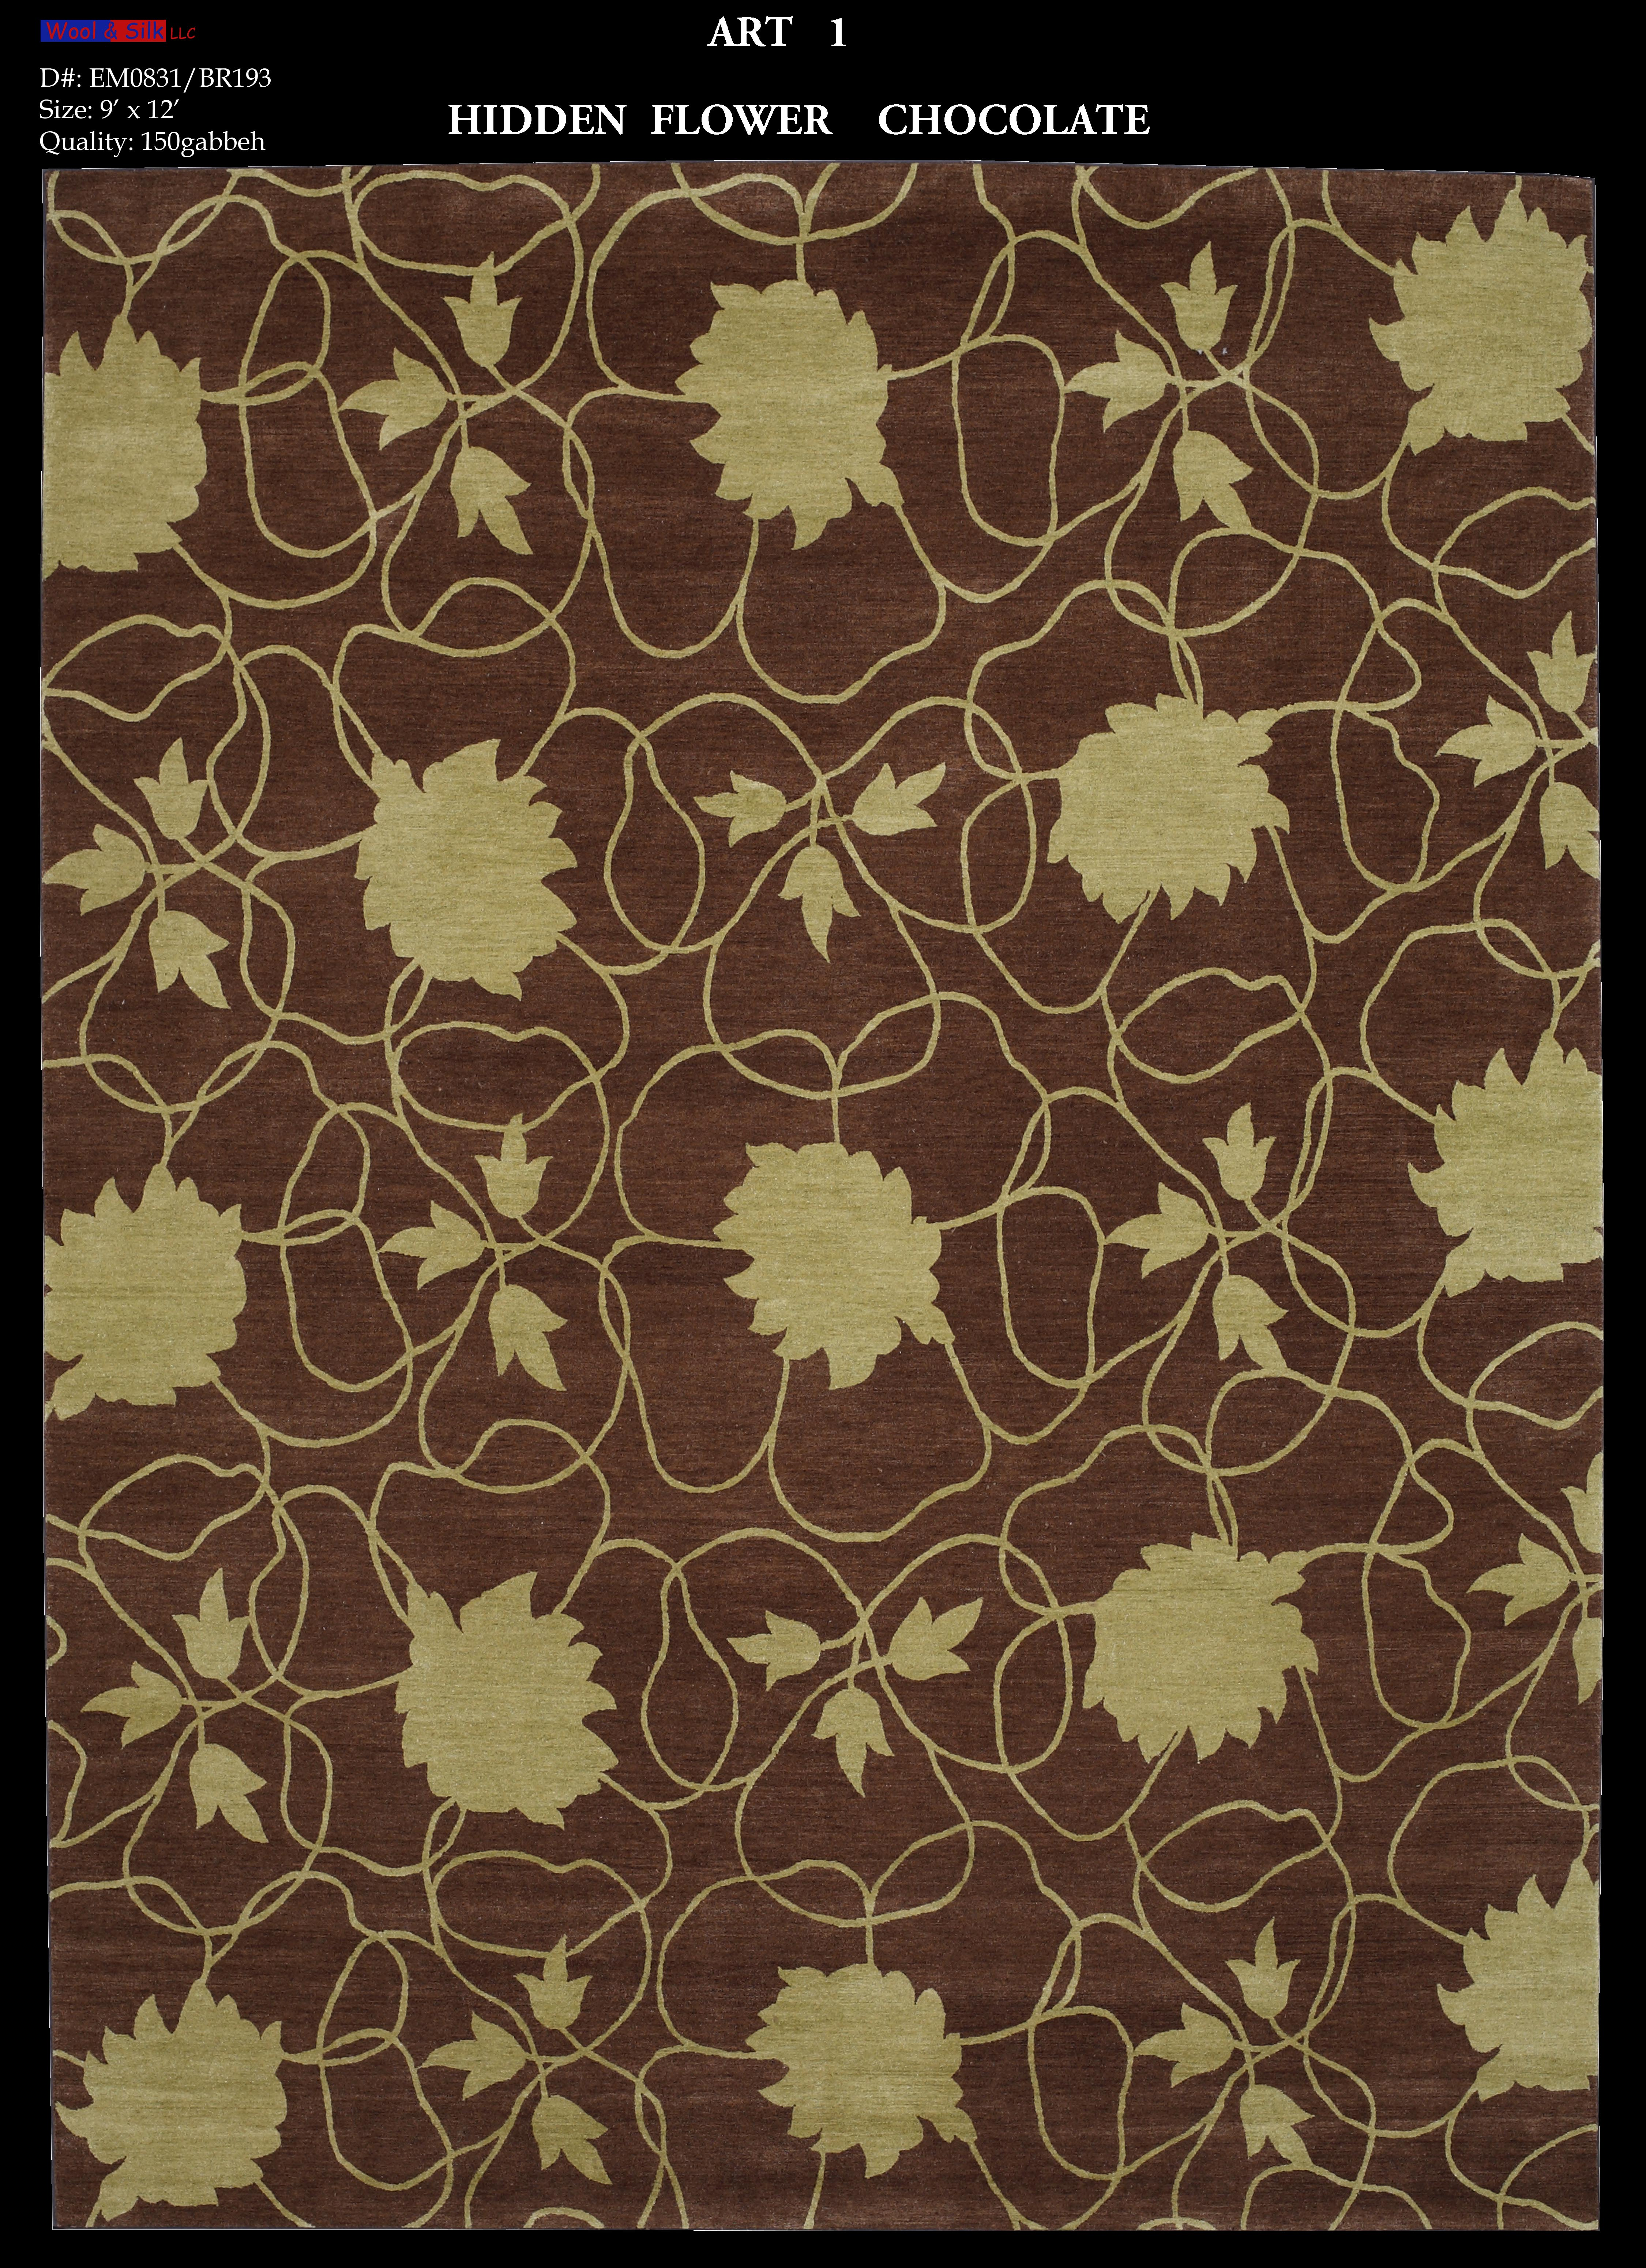 Hidden flower-Chocolate(EM0831-BR193) 9'x12'Hidden flower